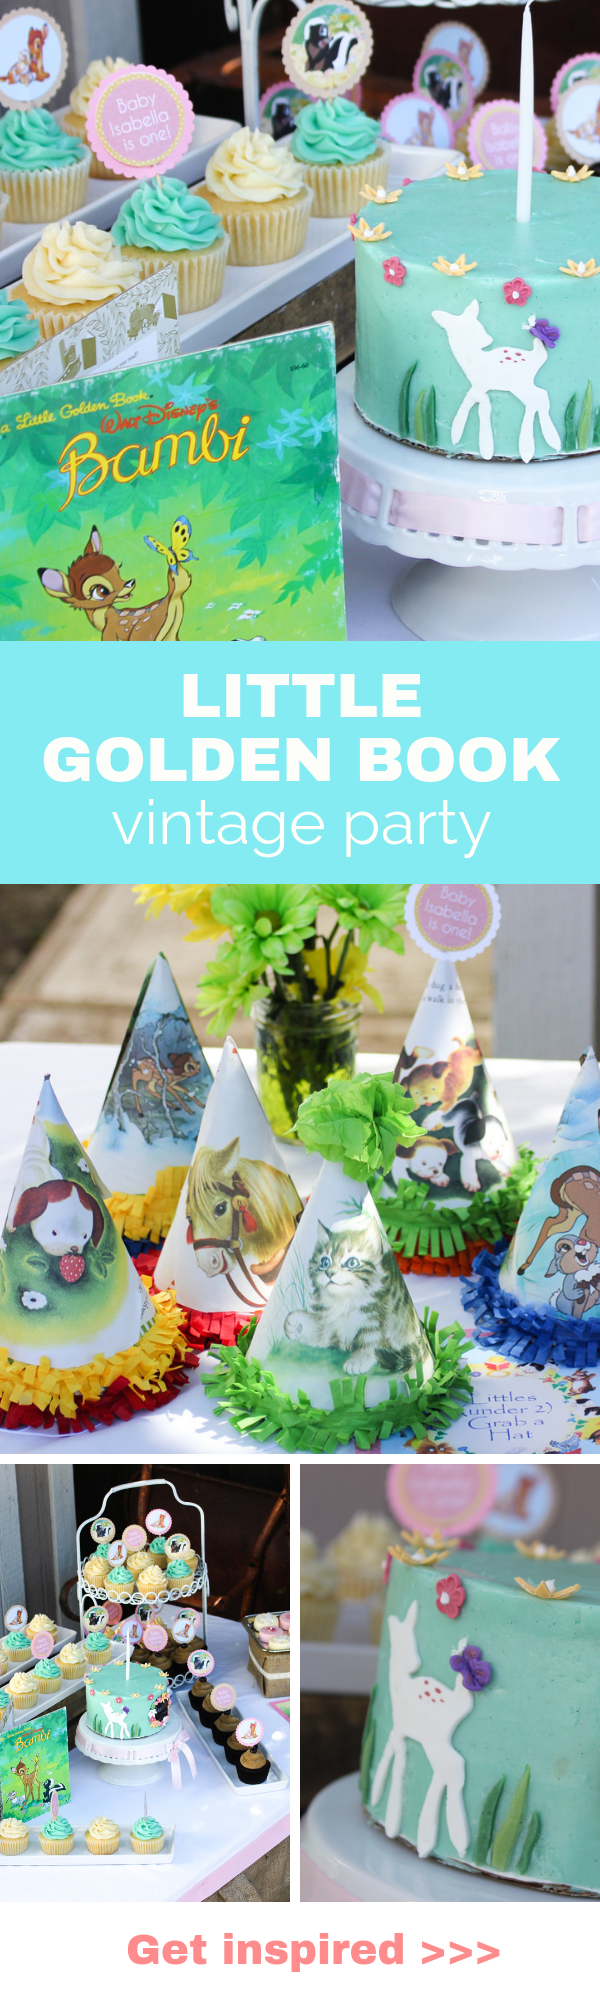 Darling Little Golden Book party. Complete with Bambi and Poki Little Puppy. #kidsbirthdays #littlegoldenbook #vintageparty